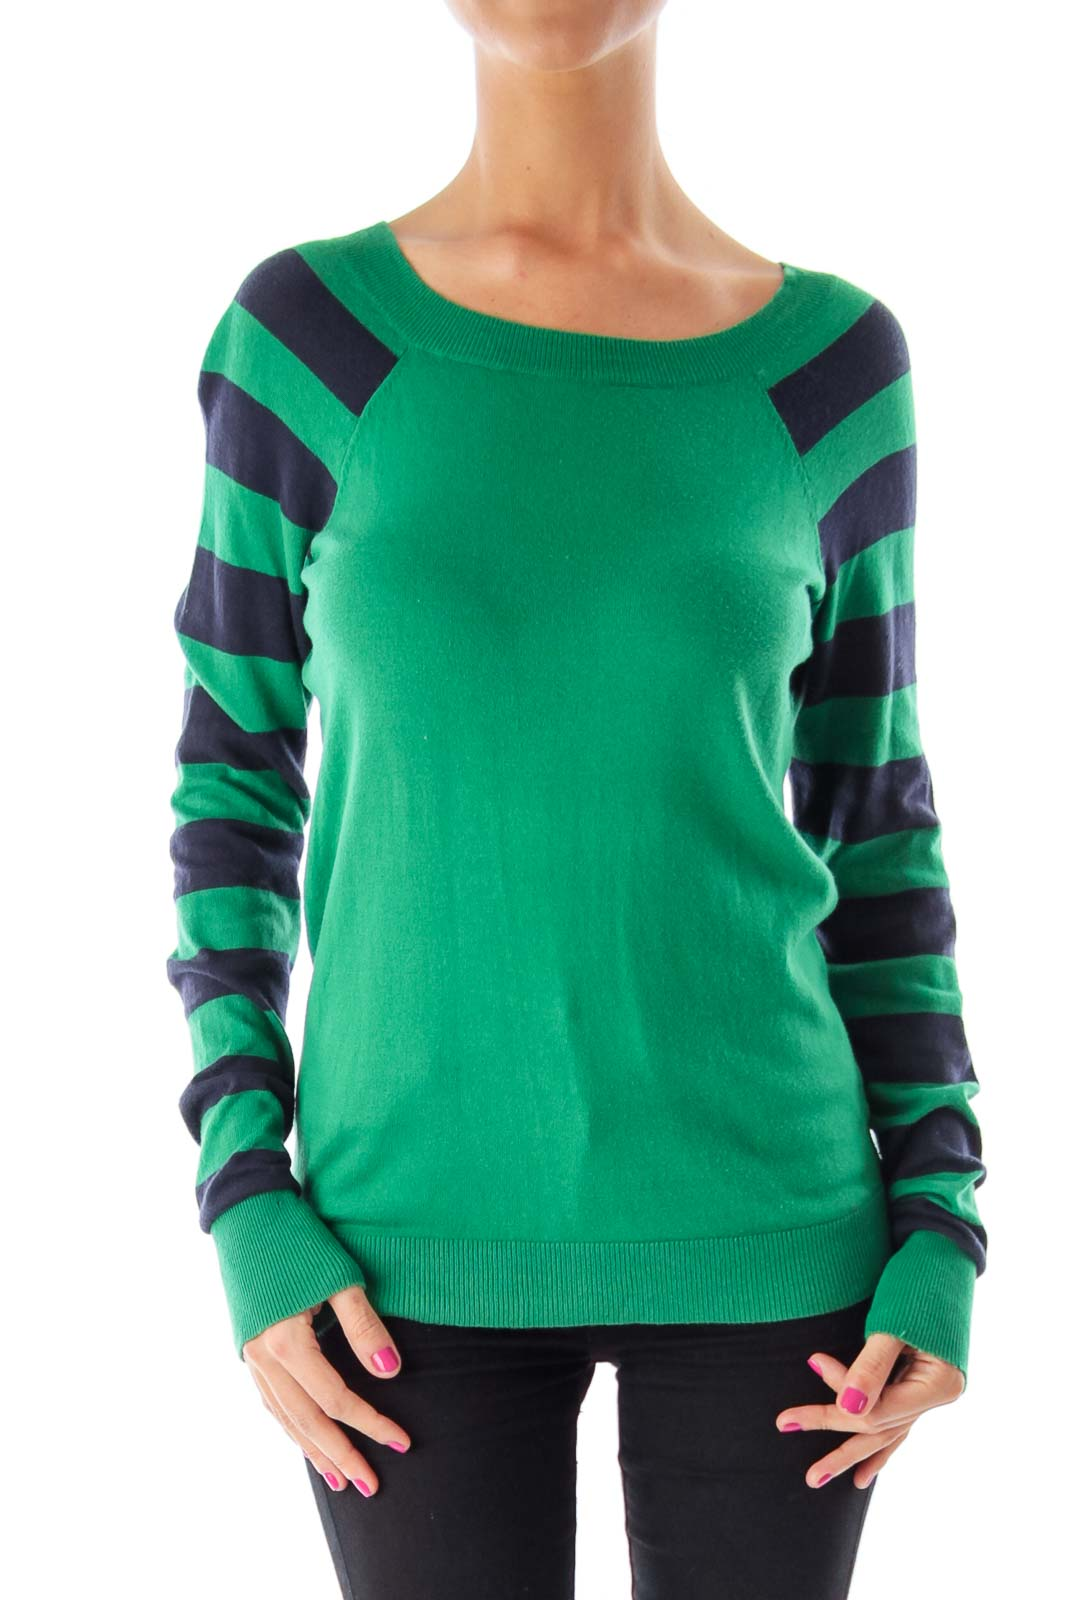 Green & Navy Striped Arms Sweater Front